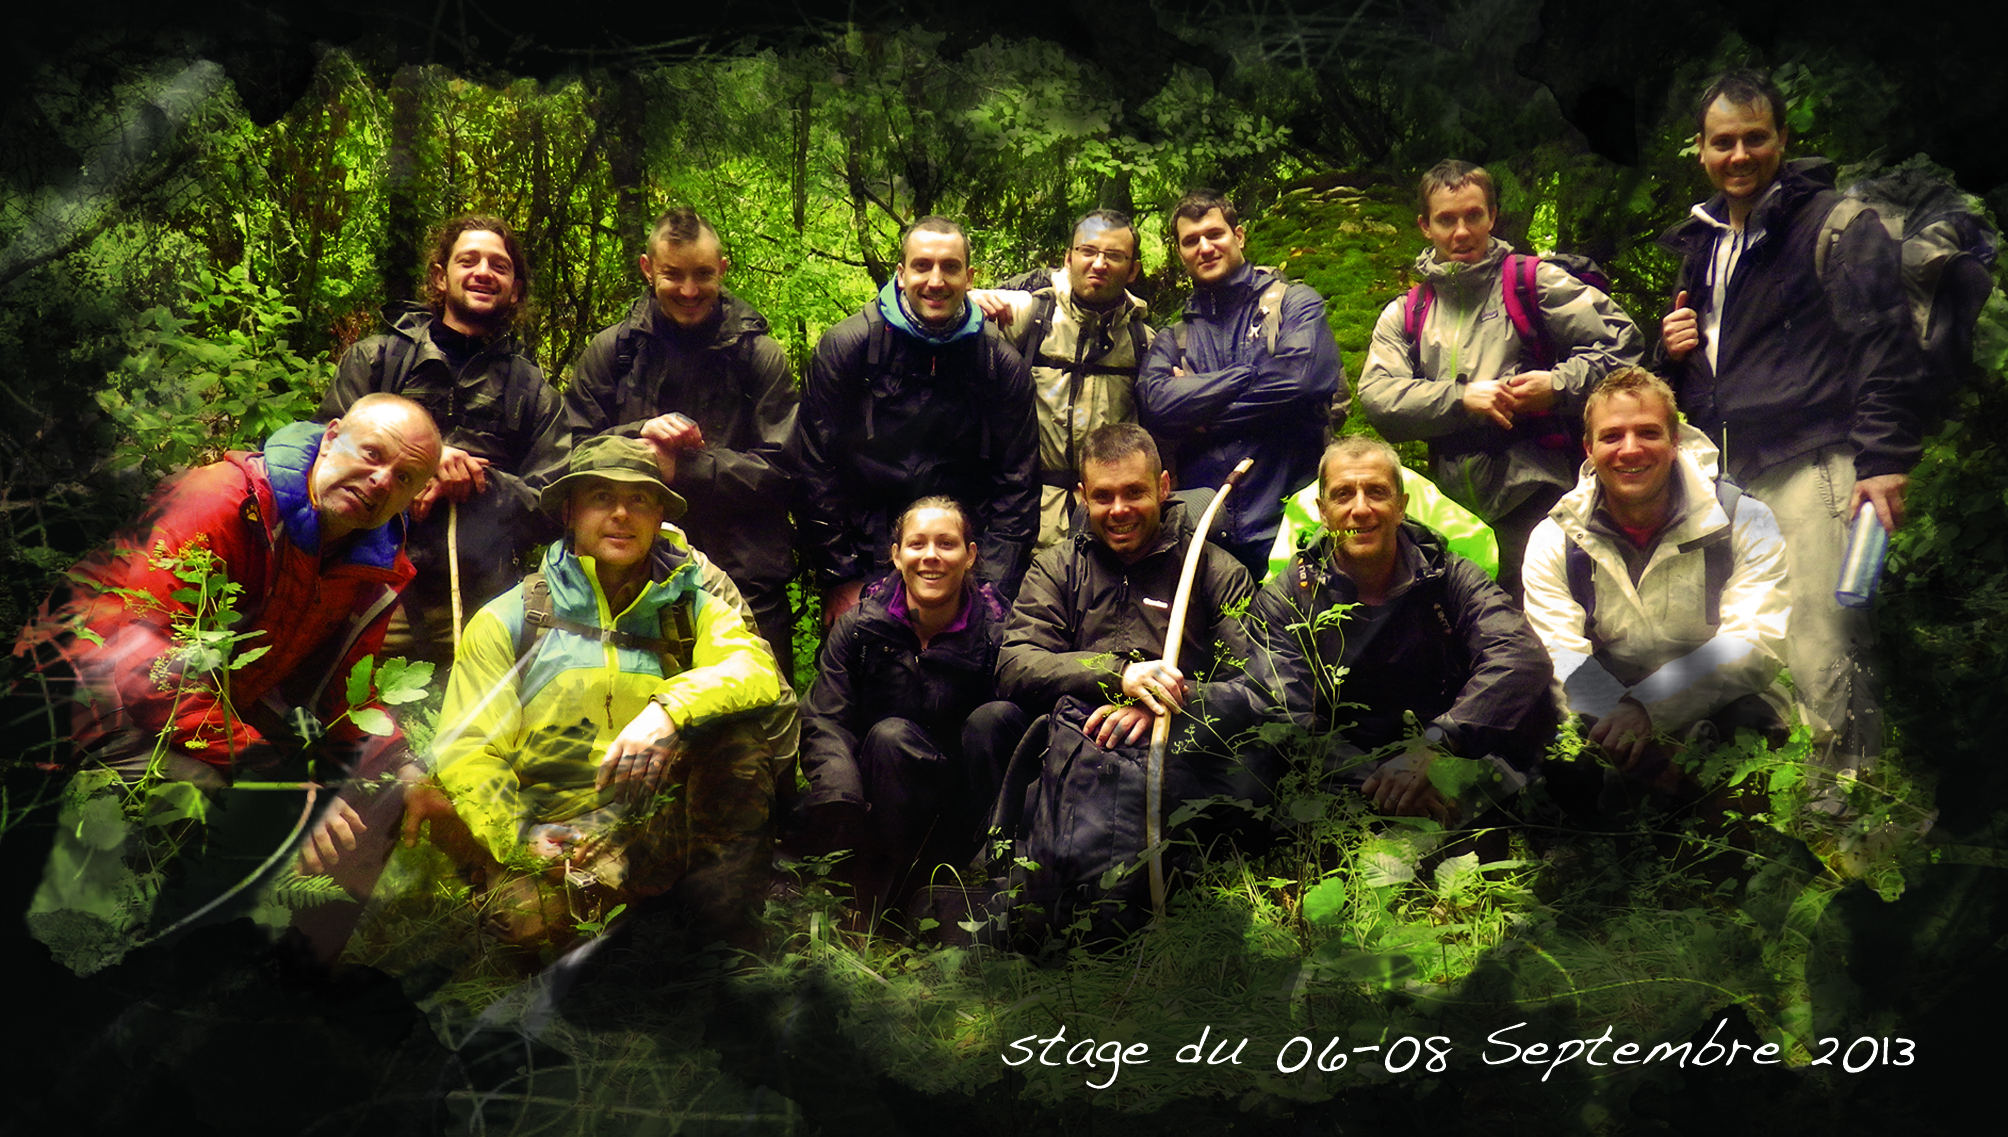 groupe stage 06_08 sept 2013.jpg